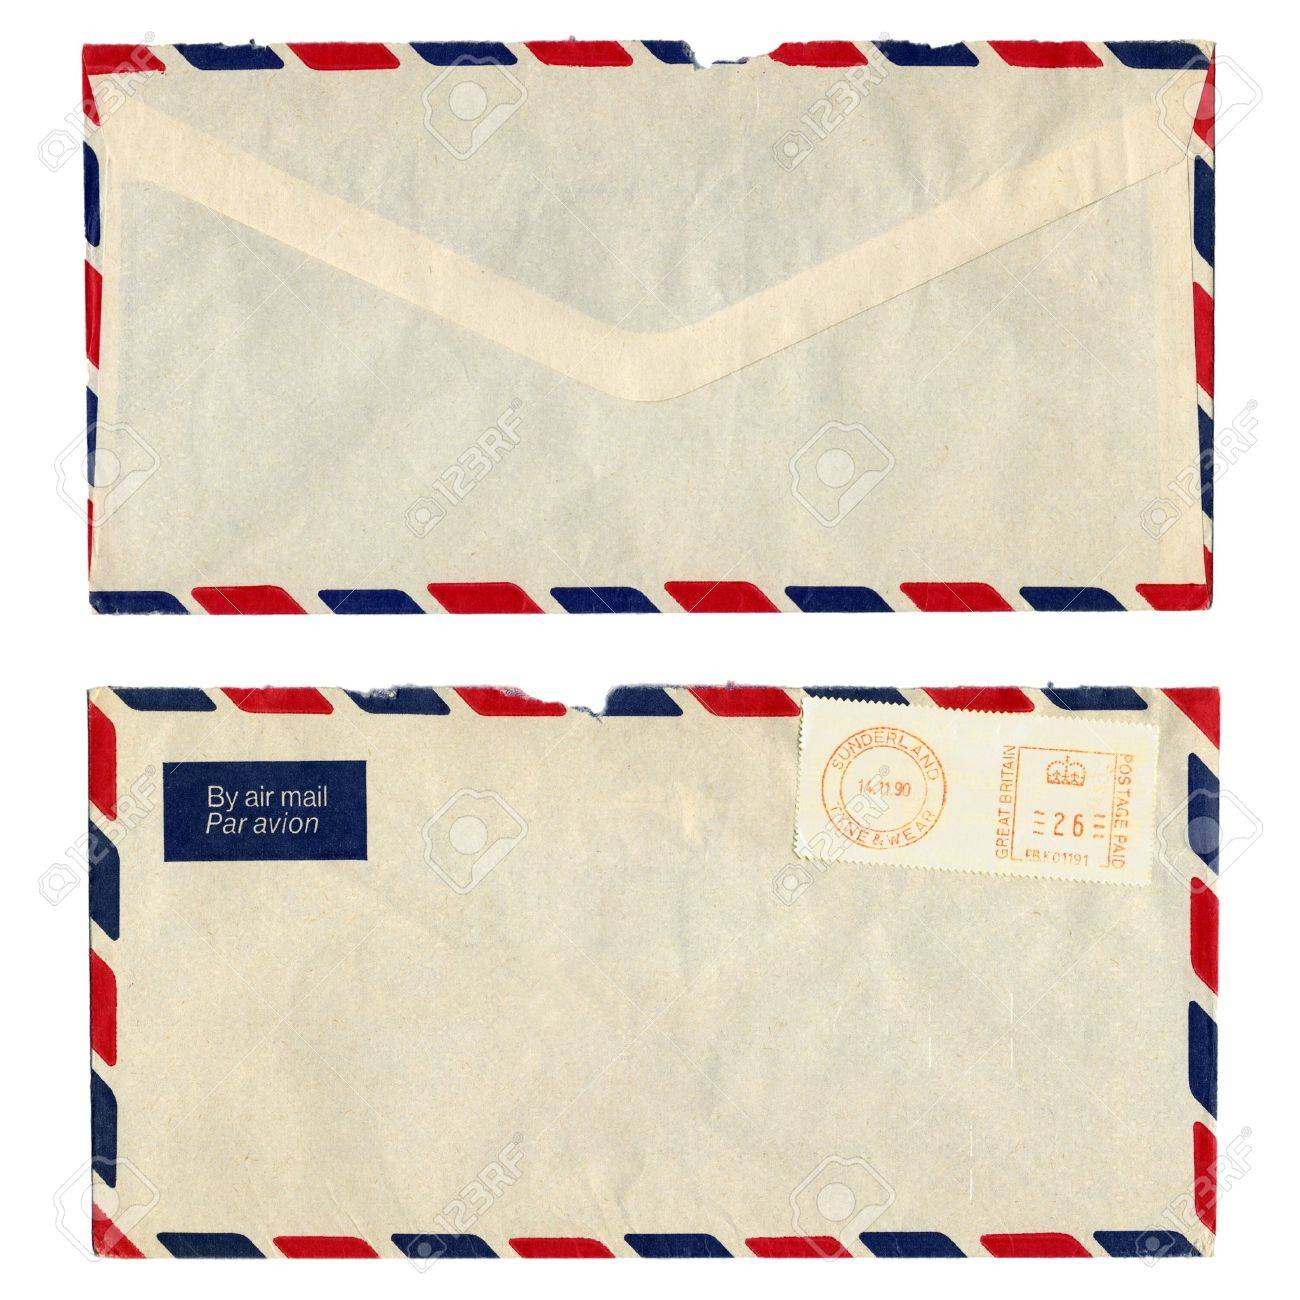 airmail letter with uk postage meter stamp stock photo 4088994